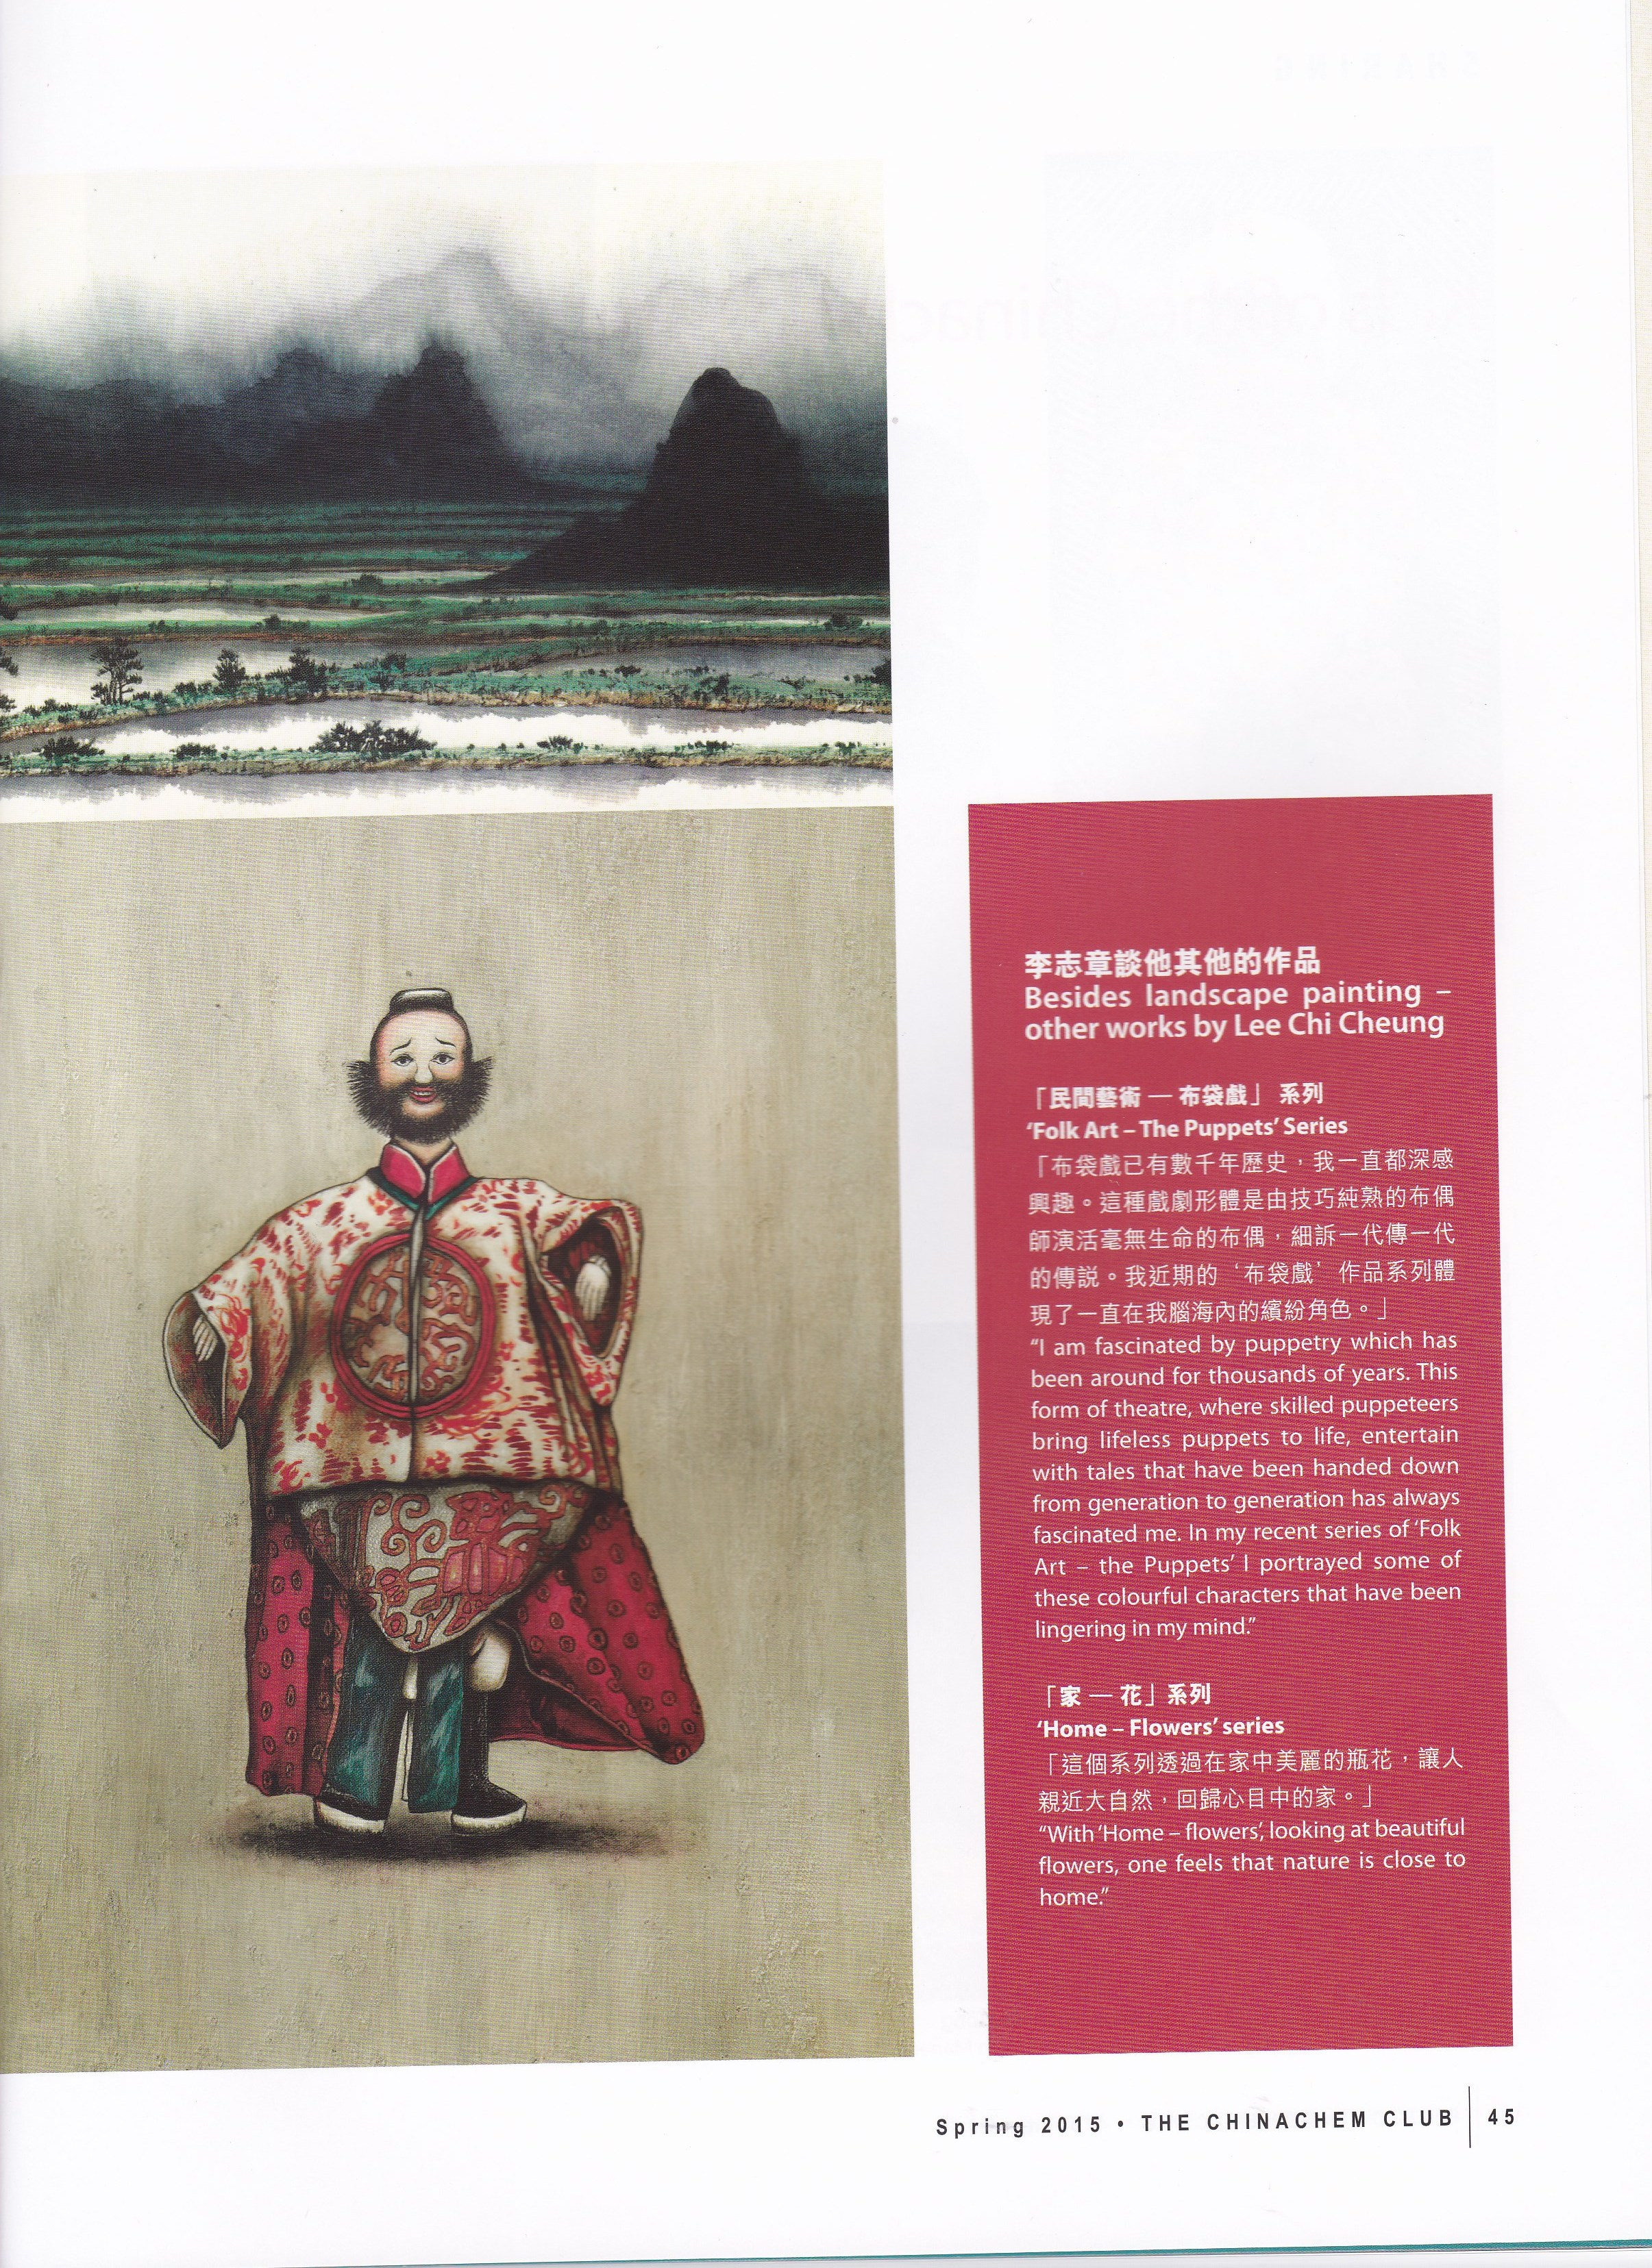 Chinachem Club Issue 44. Spring 2015, P.45; Lee Chi-cheung